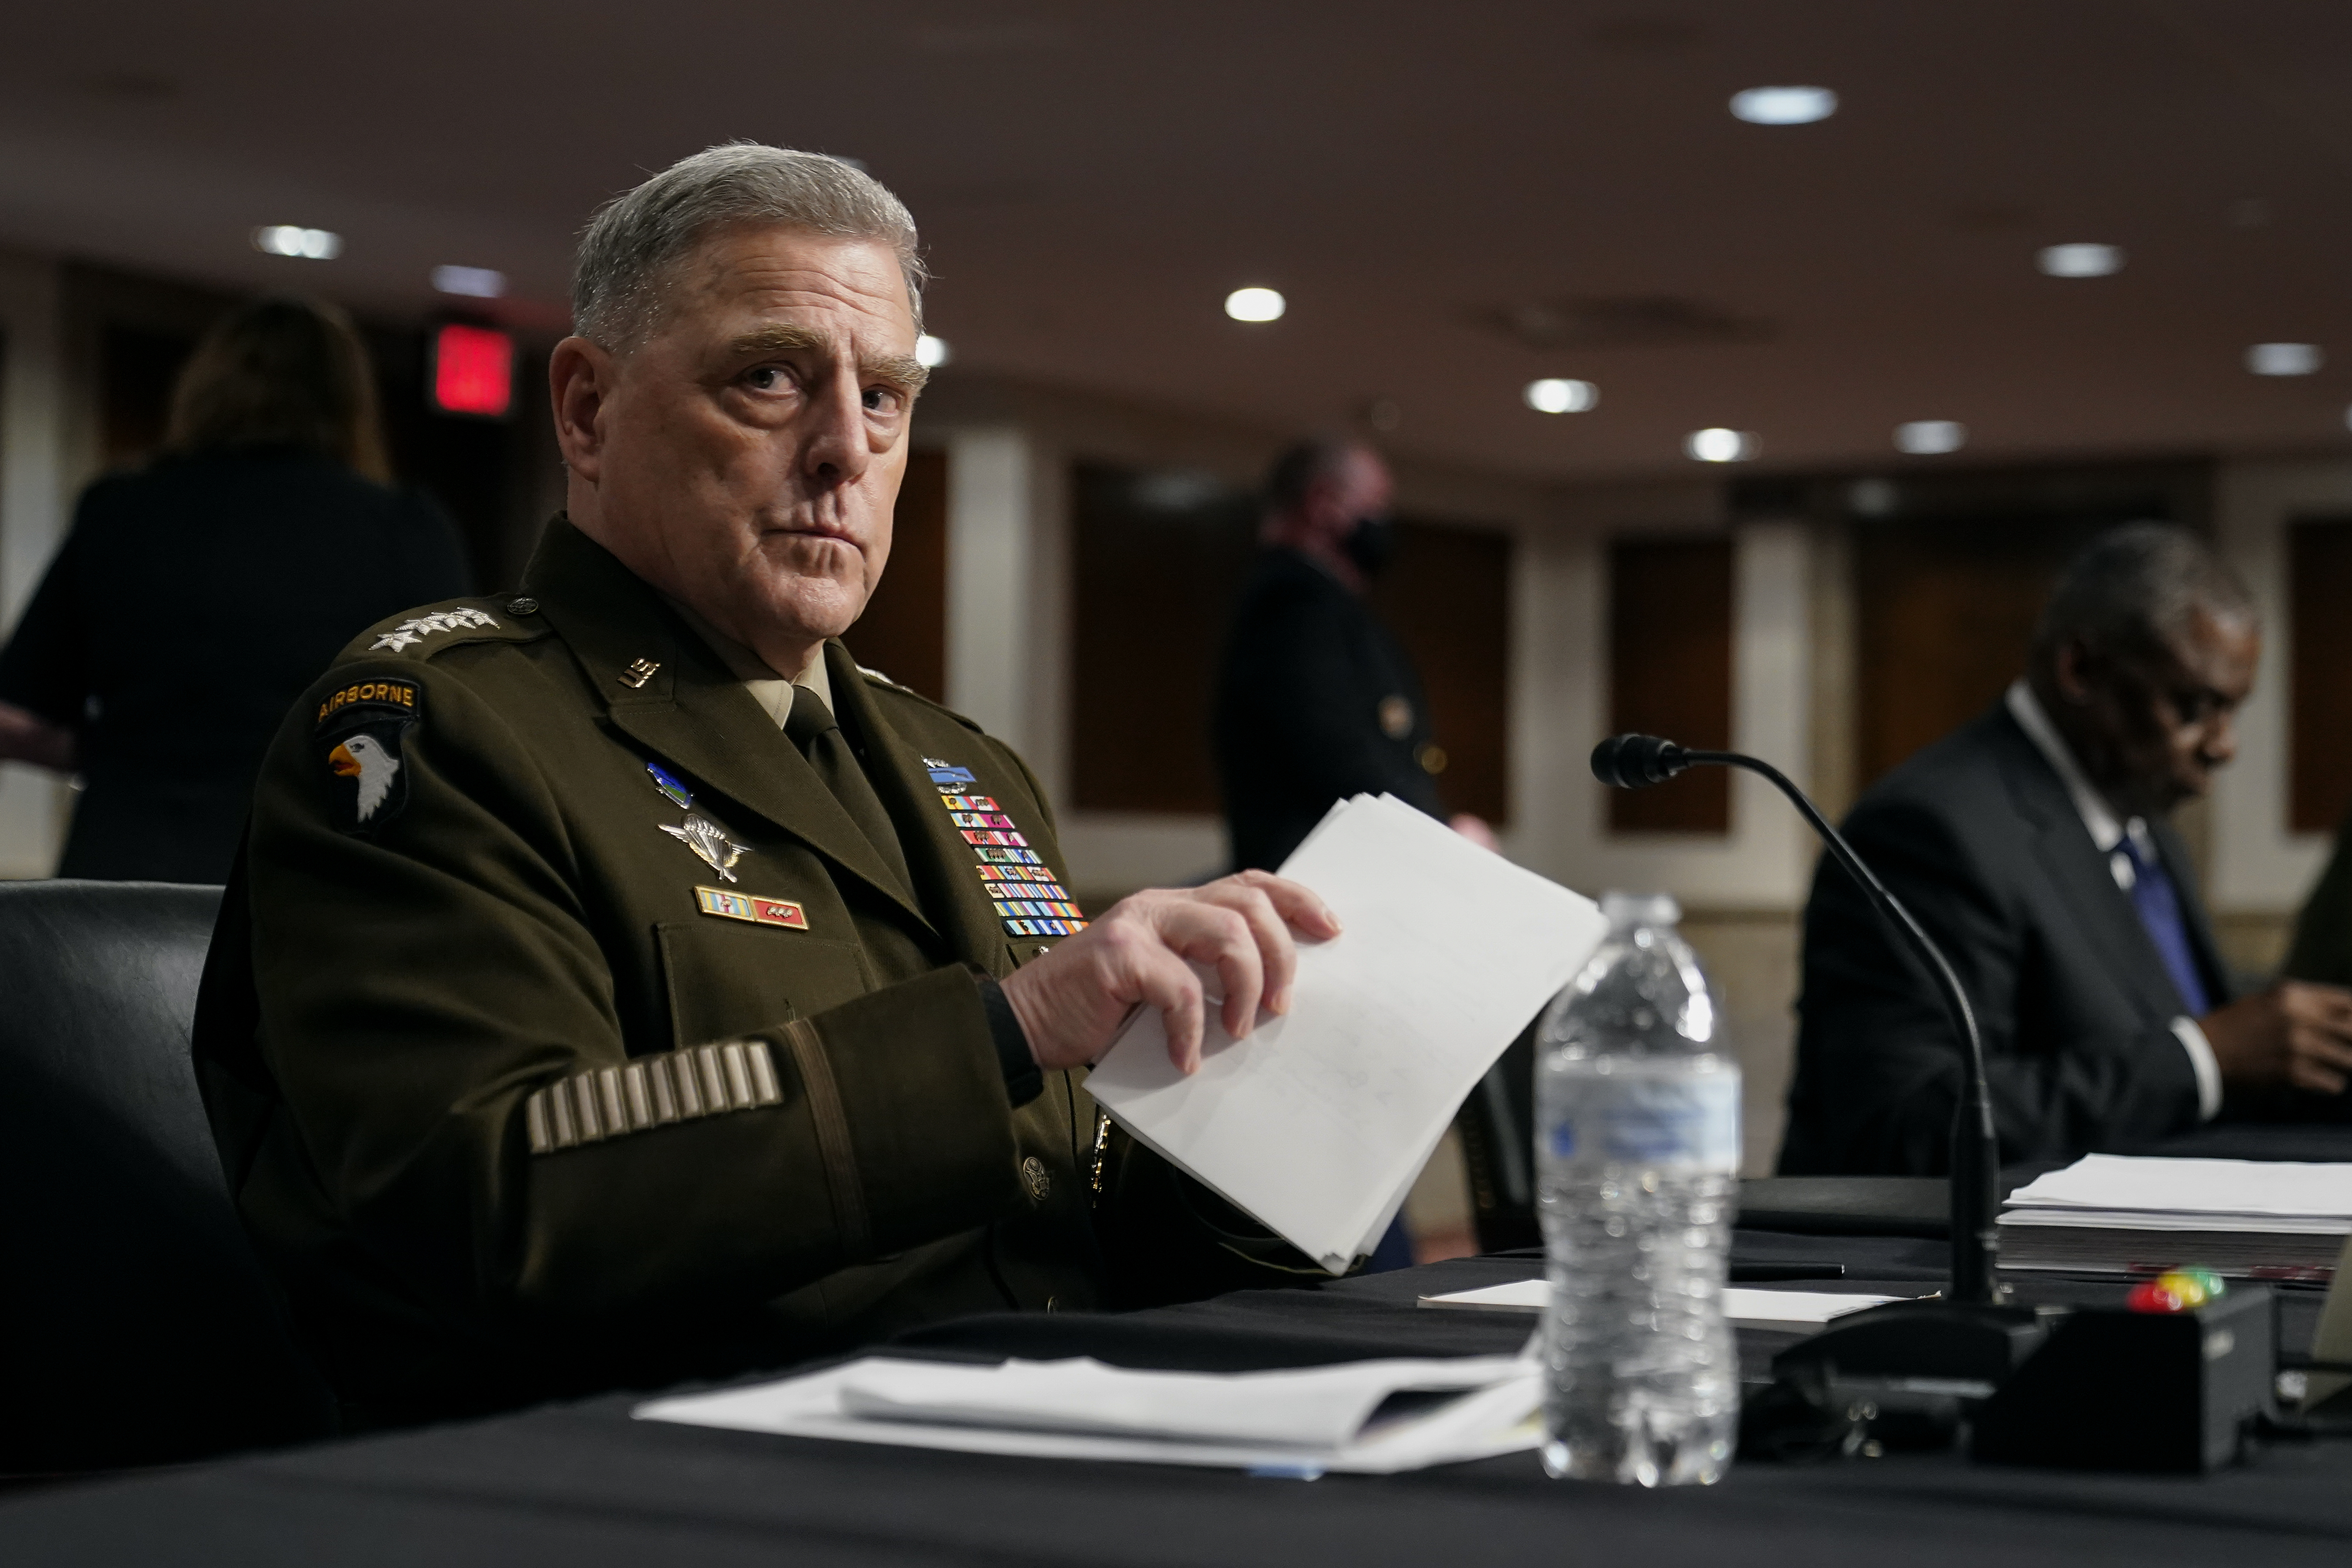 Chairman of the Joint Chiefs of Staff Gen. Mark Milley gathers his items after speaking at a Senate Armed Services Committee hearing on the conclusion of military operations in Afghanistan and plans for future counterterrorism operations, Tuesday, Sept. 28, 2021, on Capitol Hill in Washington.